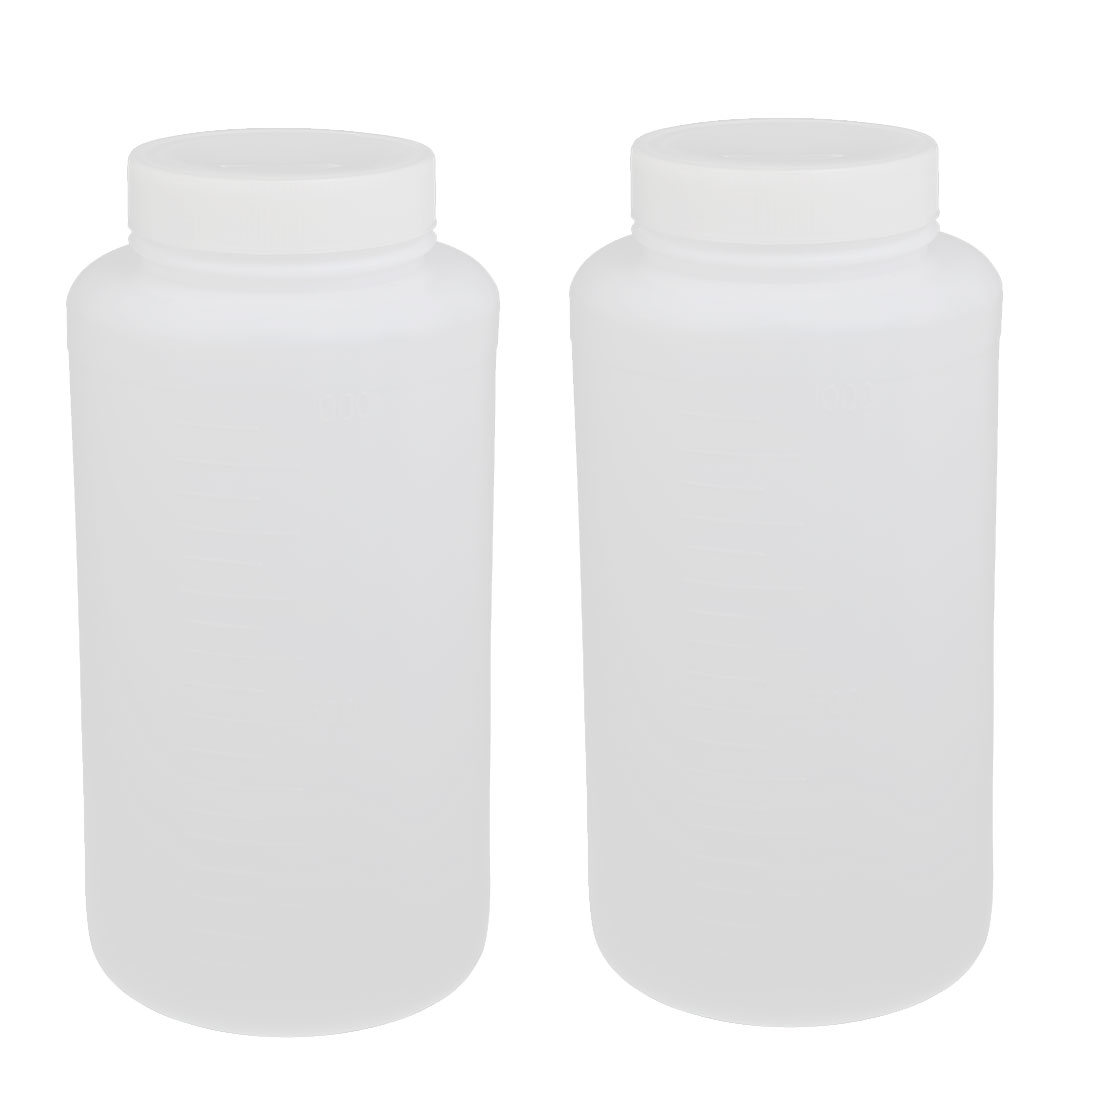 55mm Dia 190mm Height 1000ml HDPE Plastic Round Wide Mouth Bottle White 2pcs